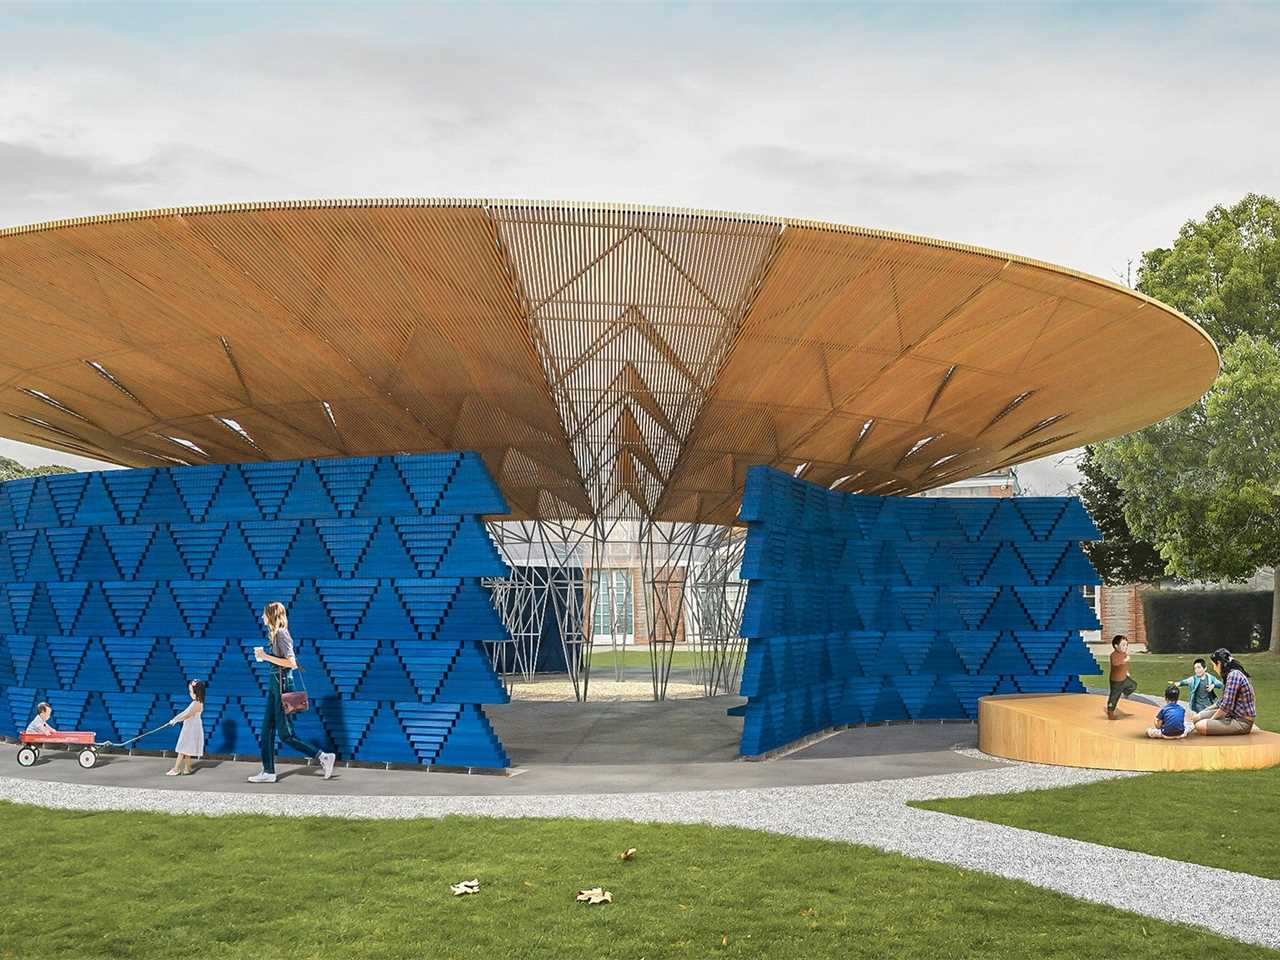 Serpentine Pavilion 2017 designed by Francis Kéré